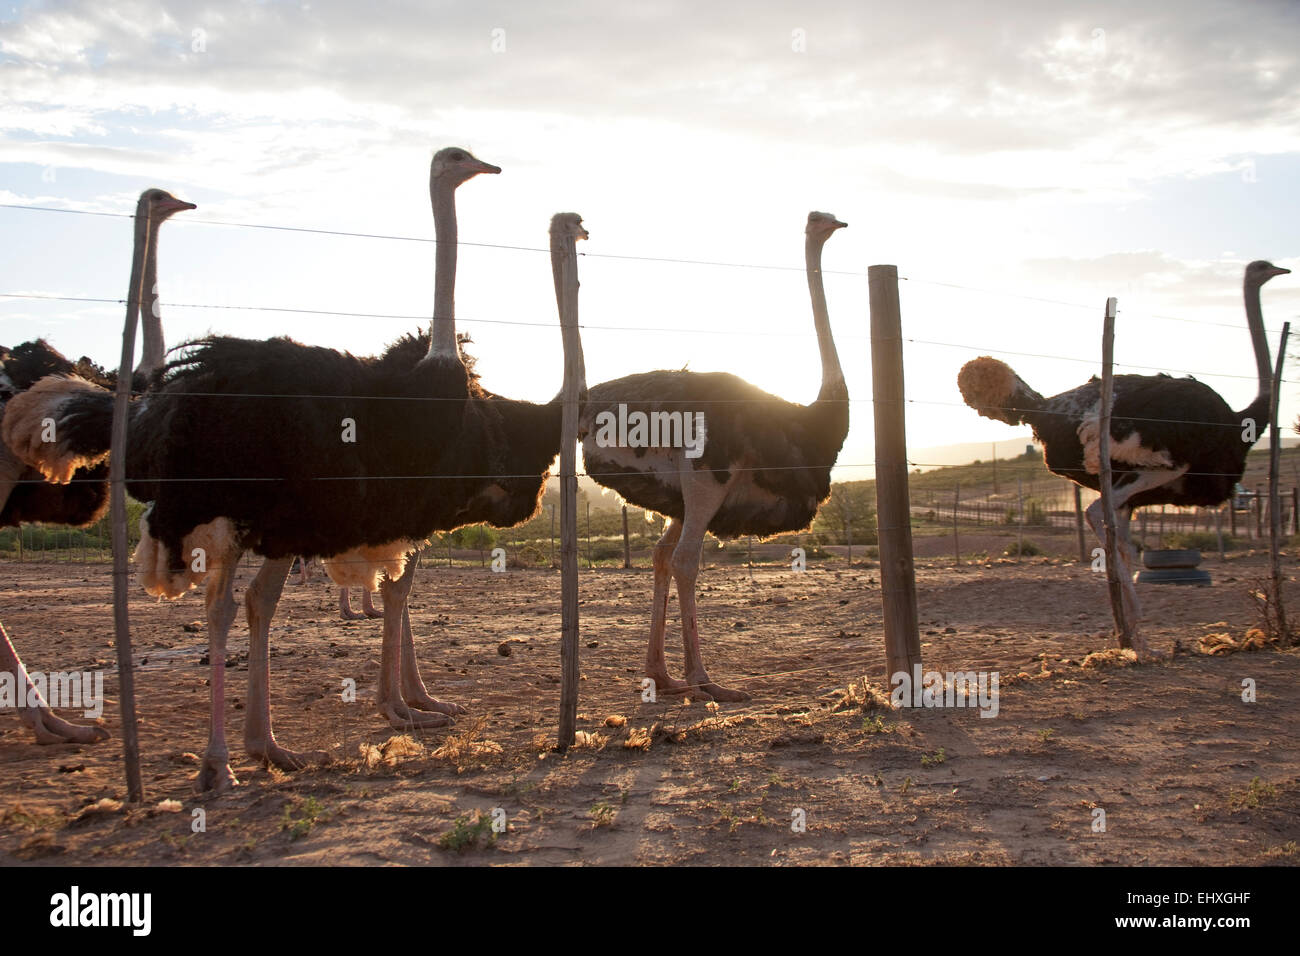 Group of ostriches behind farm fence, South Africa - Stock Image